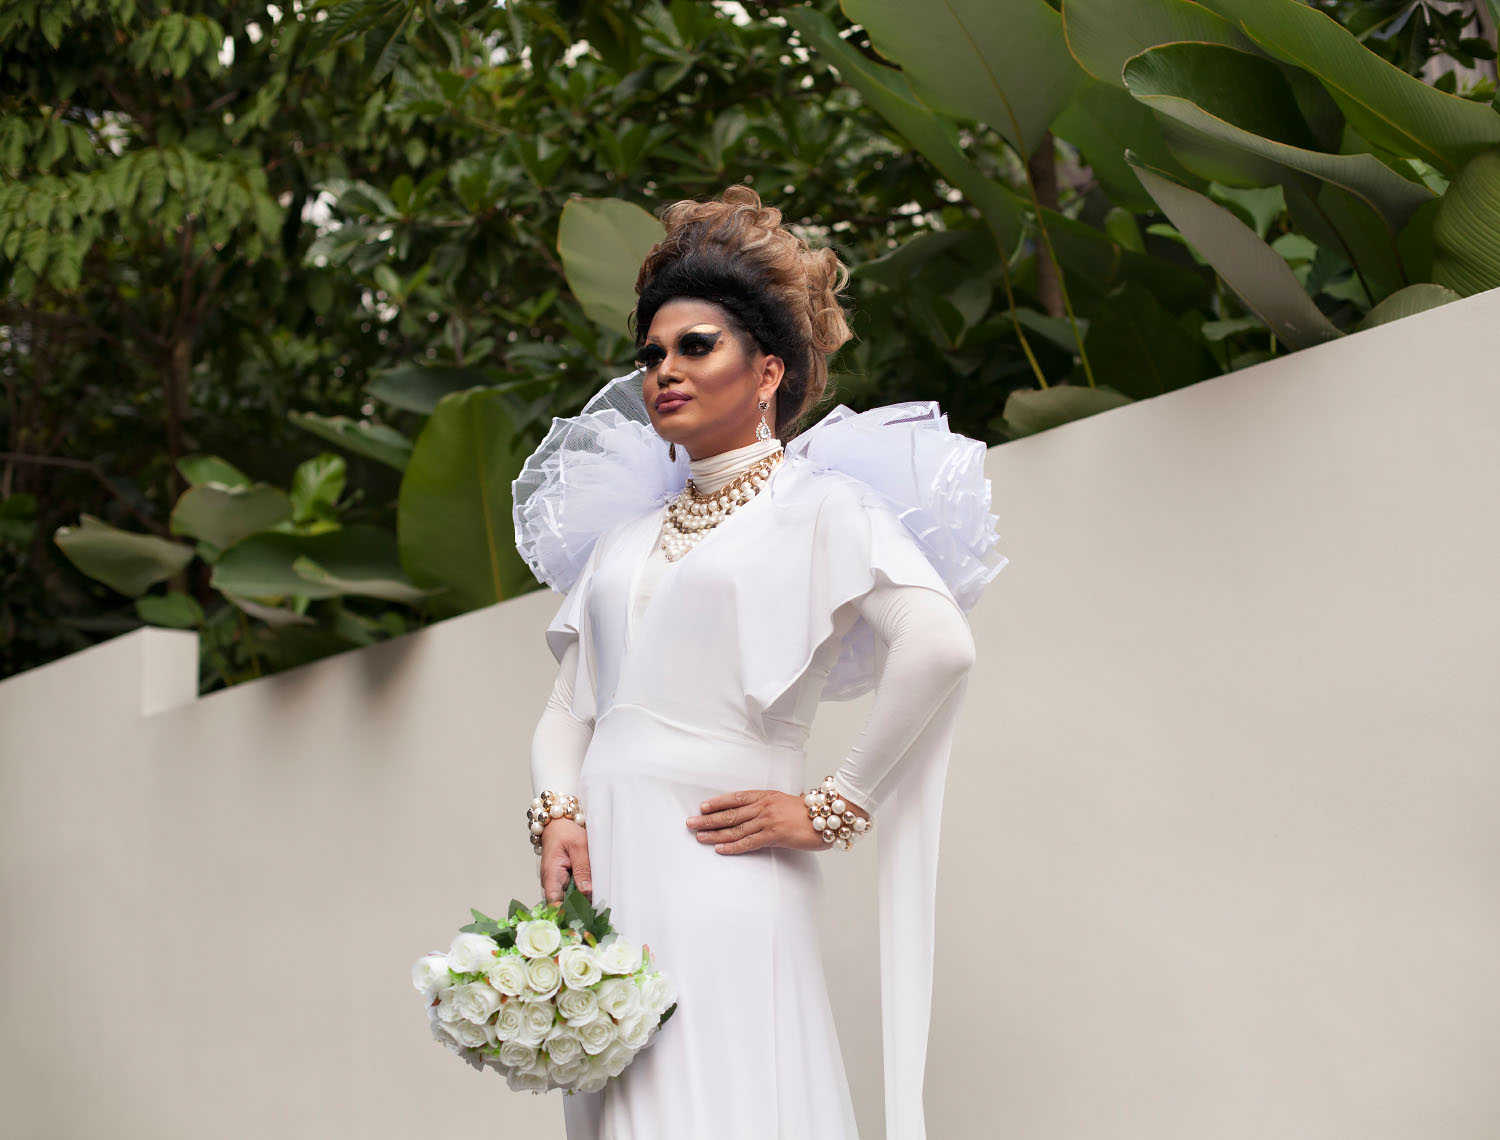 Mona Kee Kee, Drag Queen, Singapore |